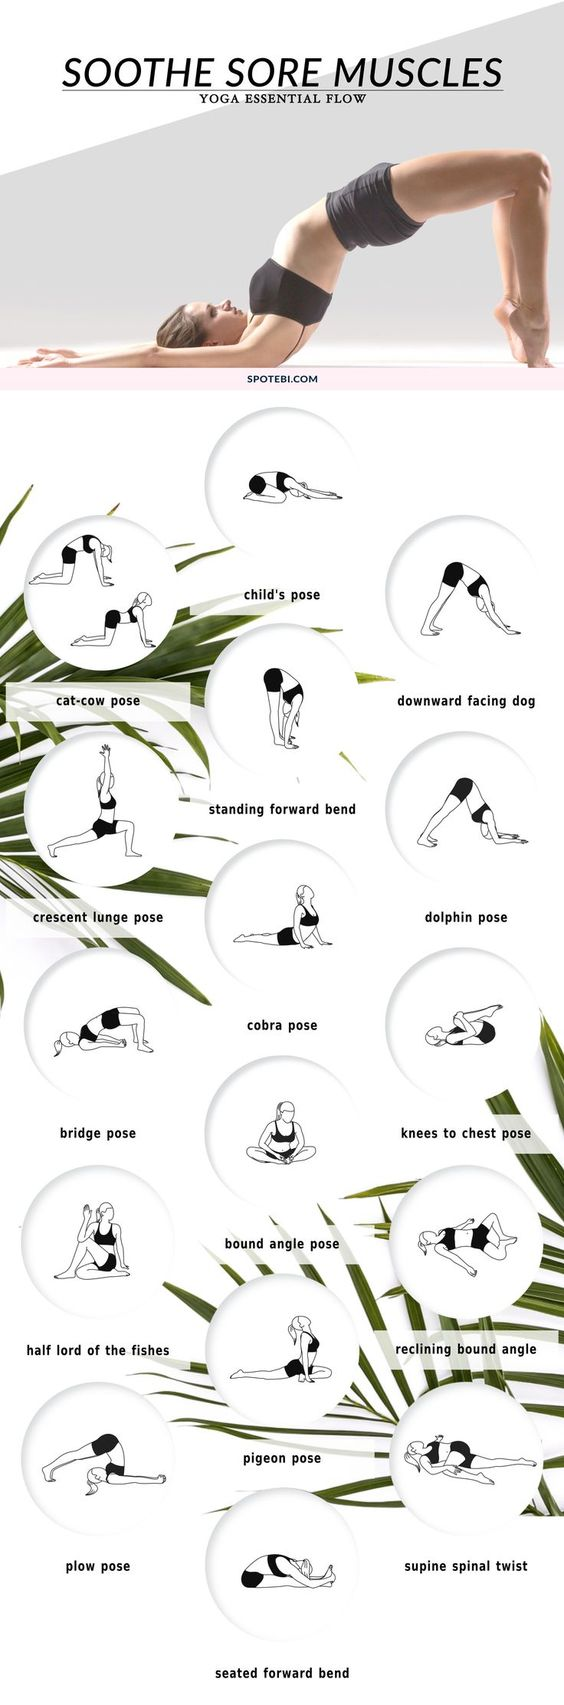 Ways to Ease Sore Muscles at Home